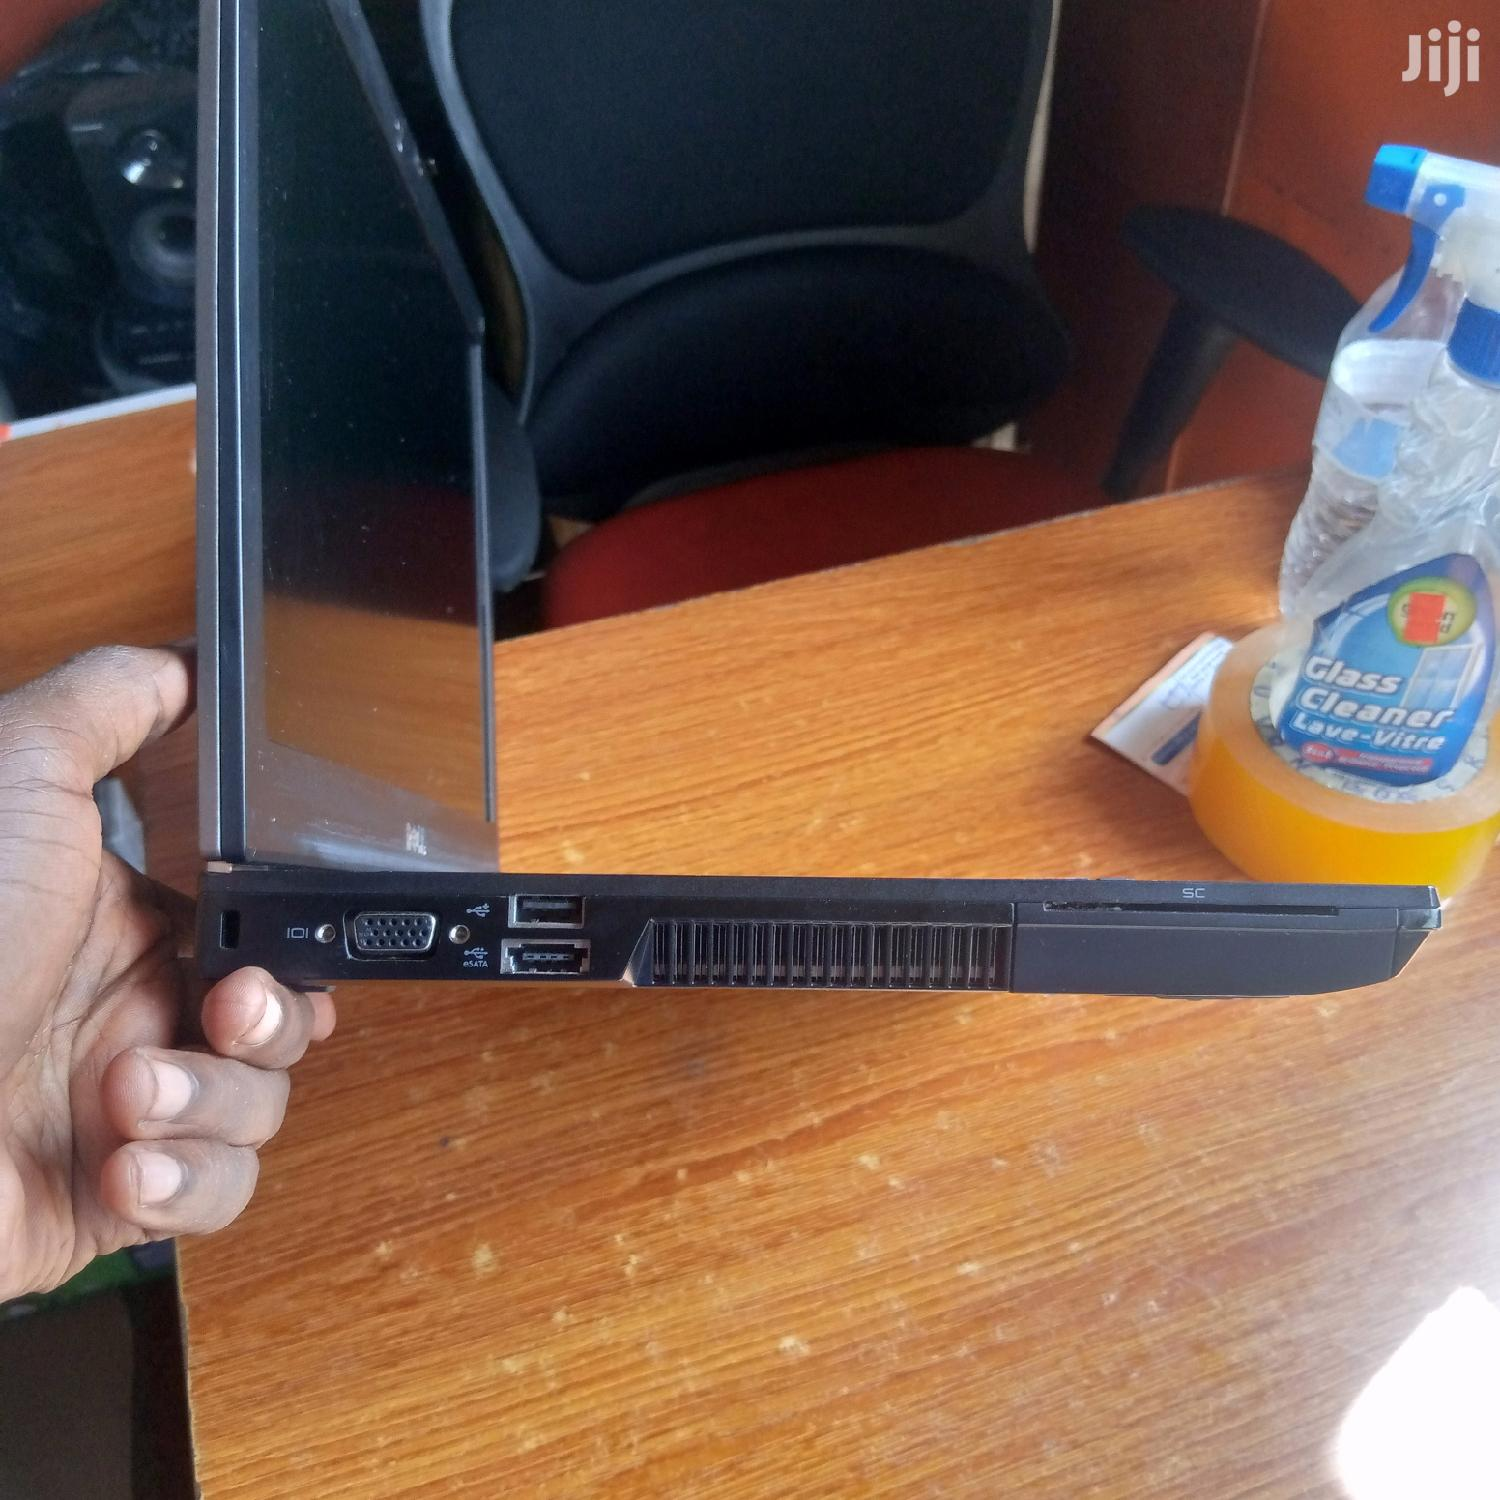 Laptop Dell Latitude E6410 4GB Intel Core i5 HDD 500GB | Laptops & Computers for sale in Accra Metropolitan, Greater Accra, Ghana